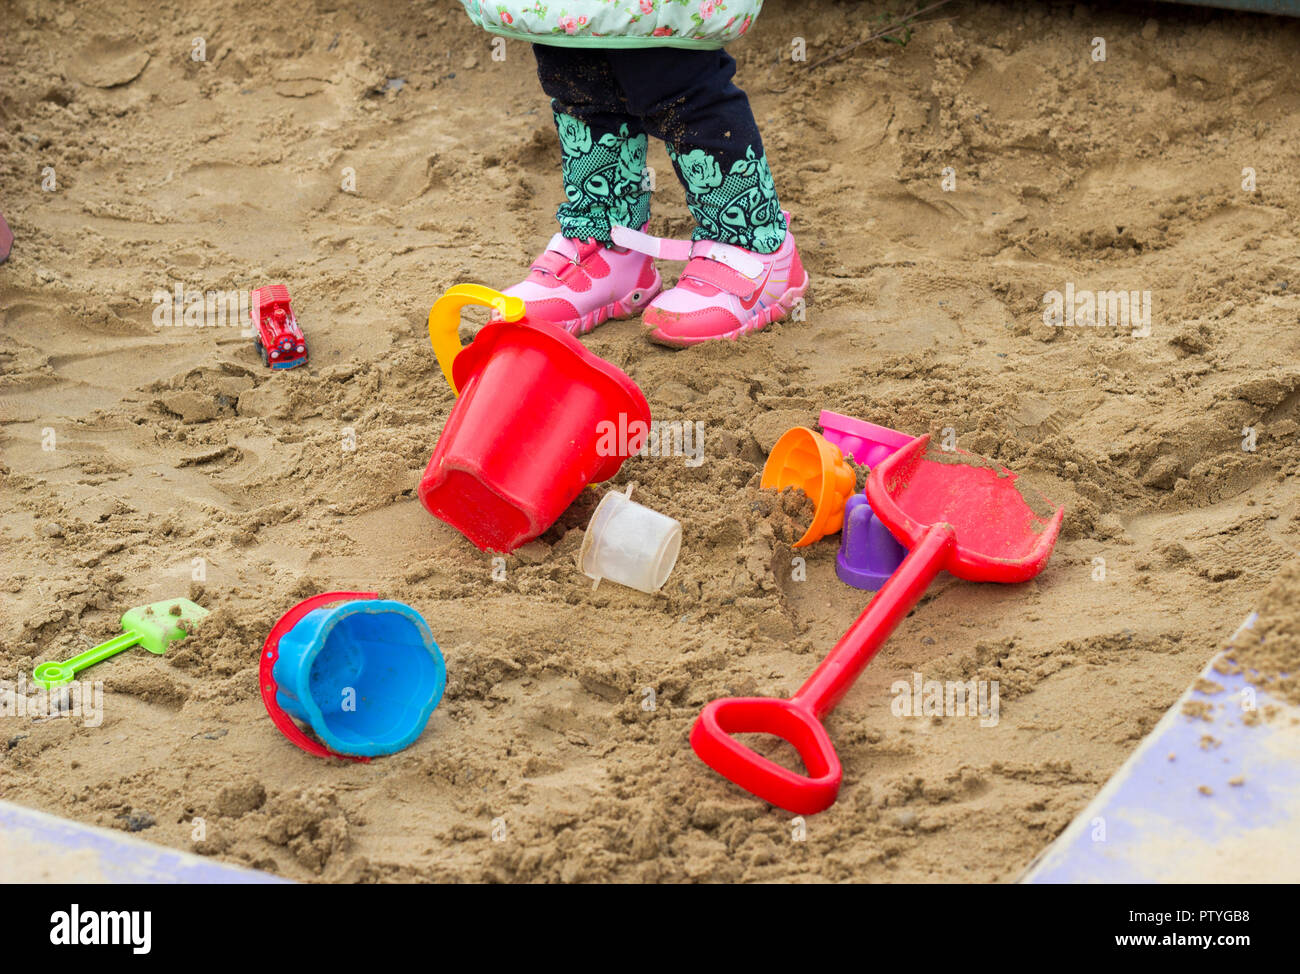 Children's toys in the sandbox and children's legs - Stock Image